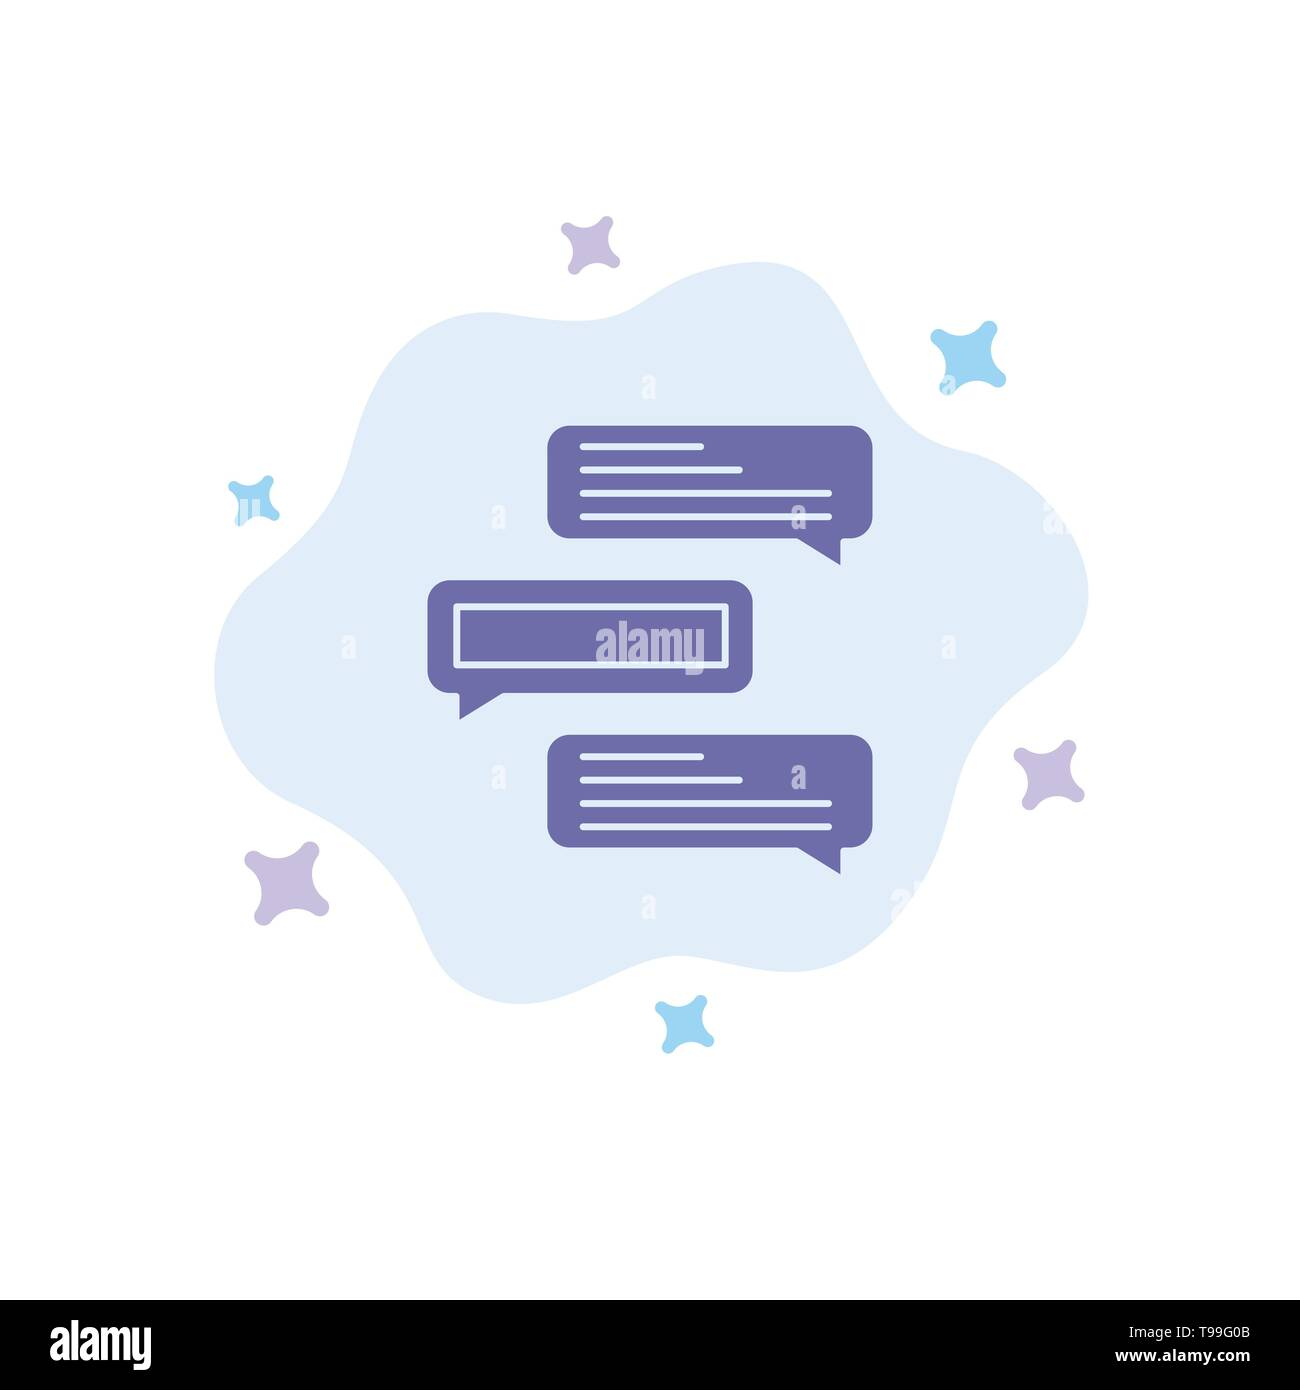 Chat, Bubbles, Comments, Conversations, Talks Blue Icon on Abstract Cloud Background - Stock Vector